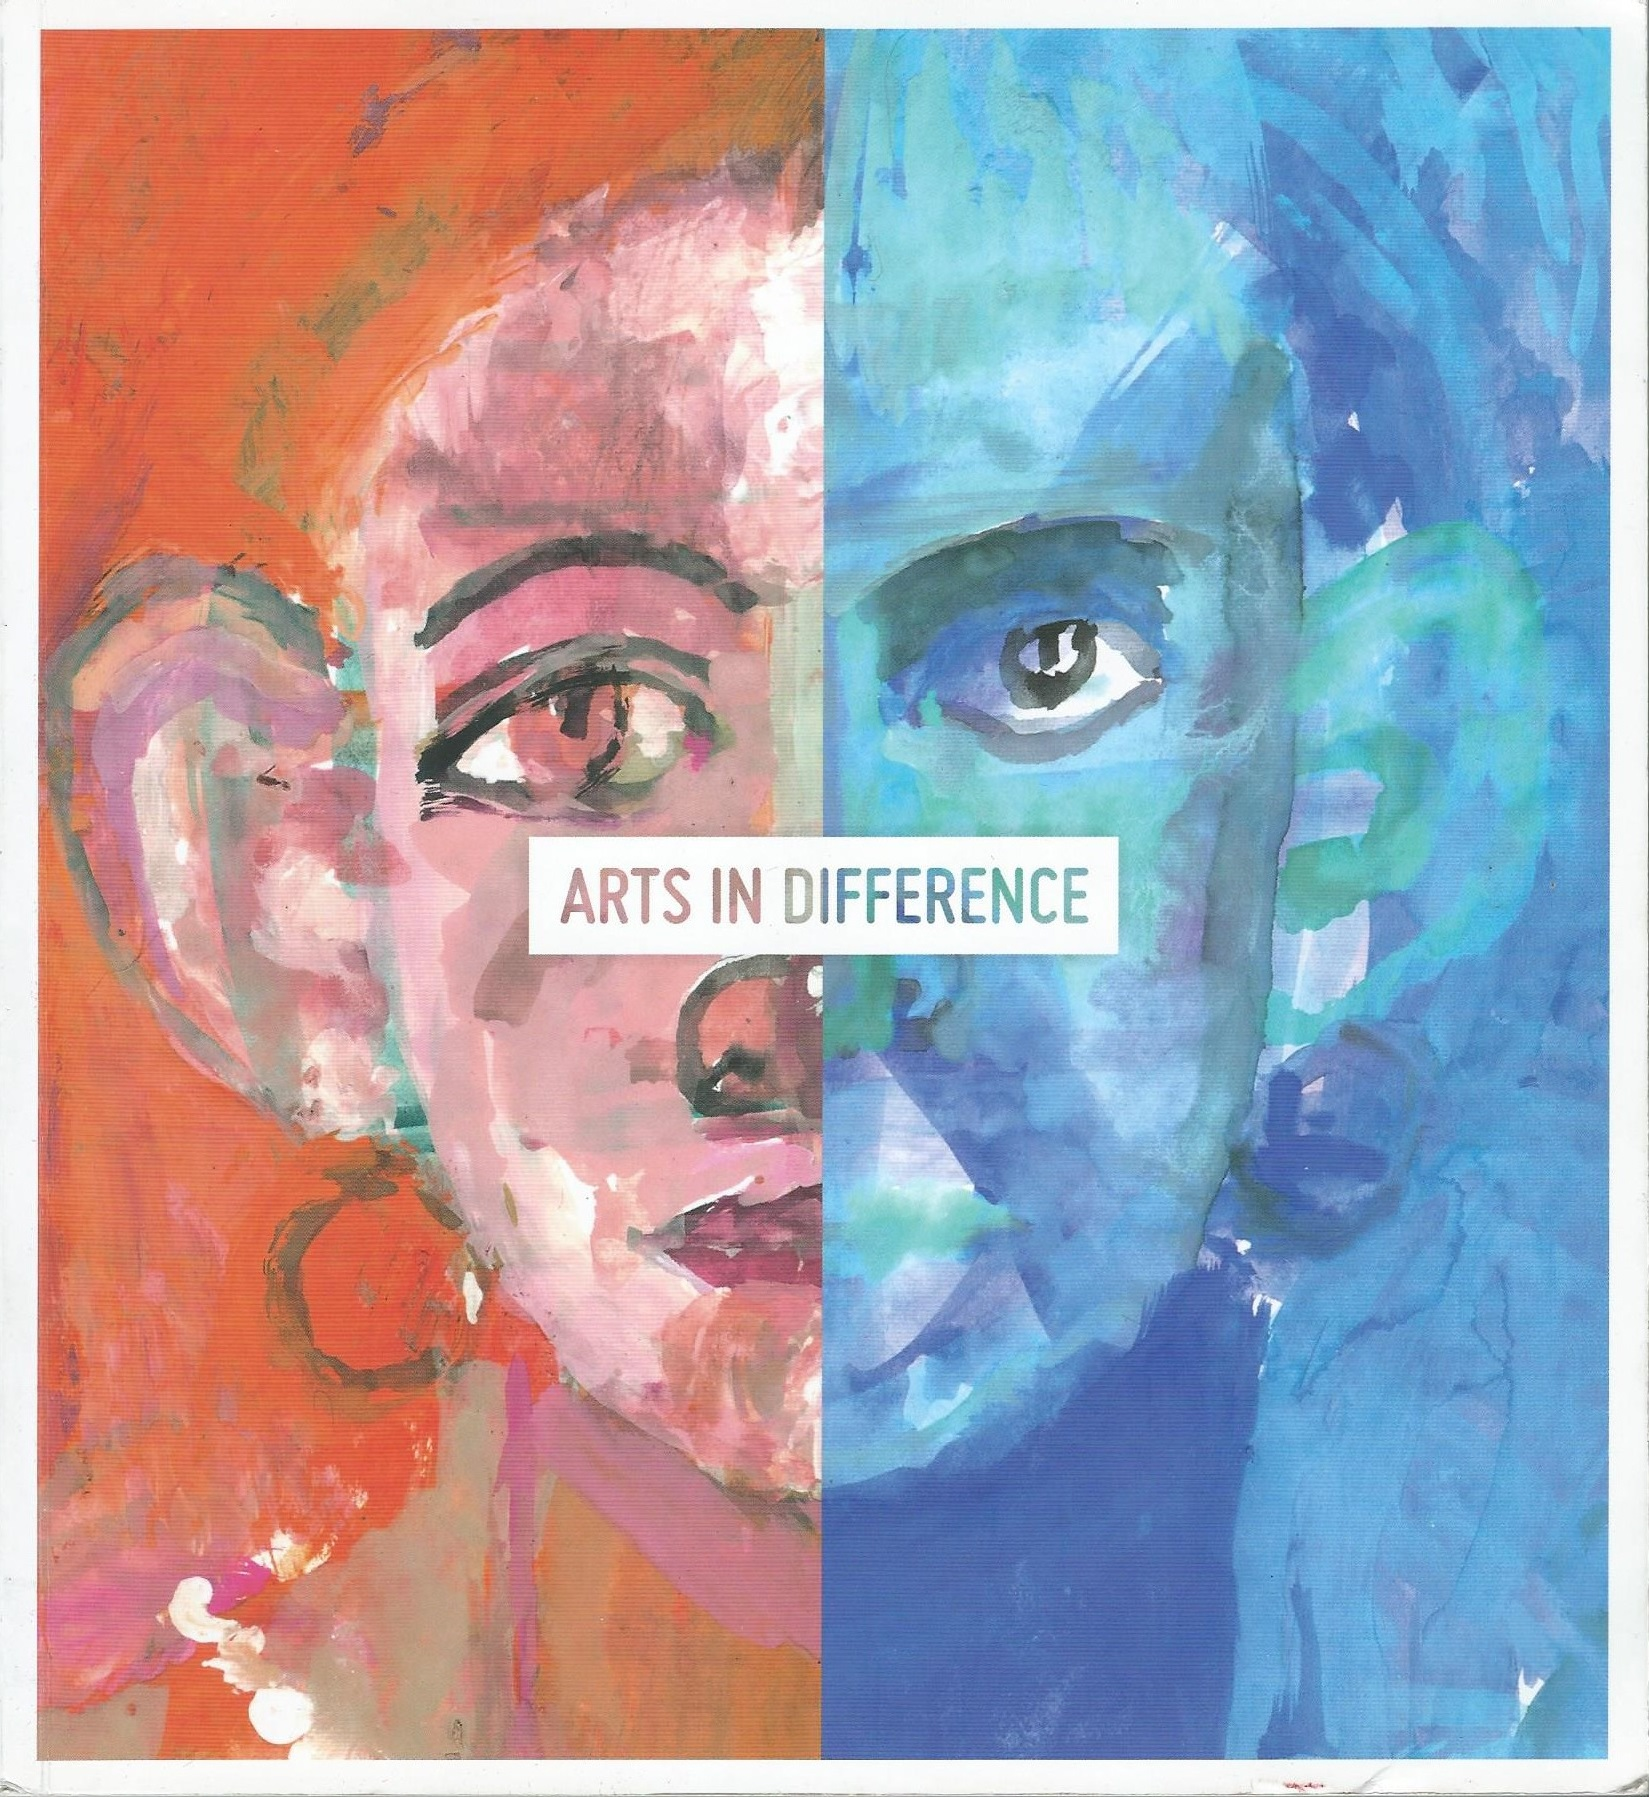 Arts in difference